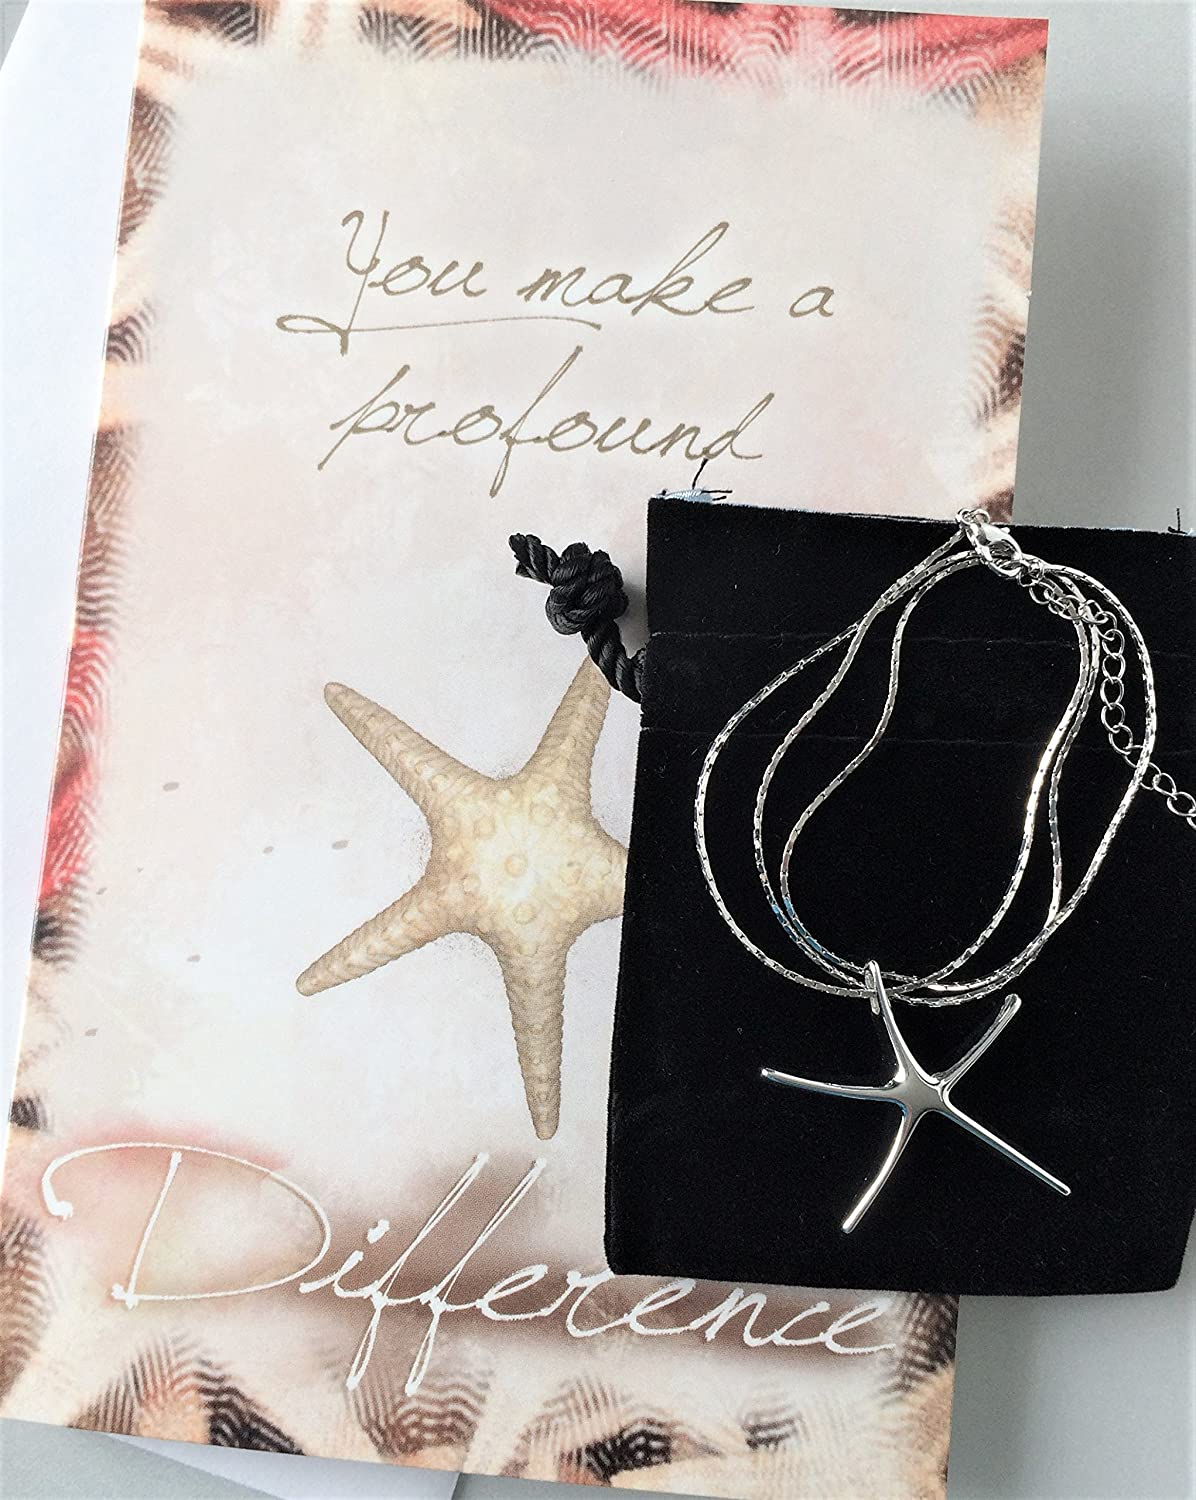 Starfish poem card - Amazon Com Smiling Wisdom Starfish Silver Necklace Gift Set You Make A Profound Difference Card Appreciation Thank You Friend Teacher Volunteer